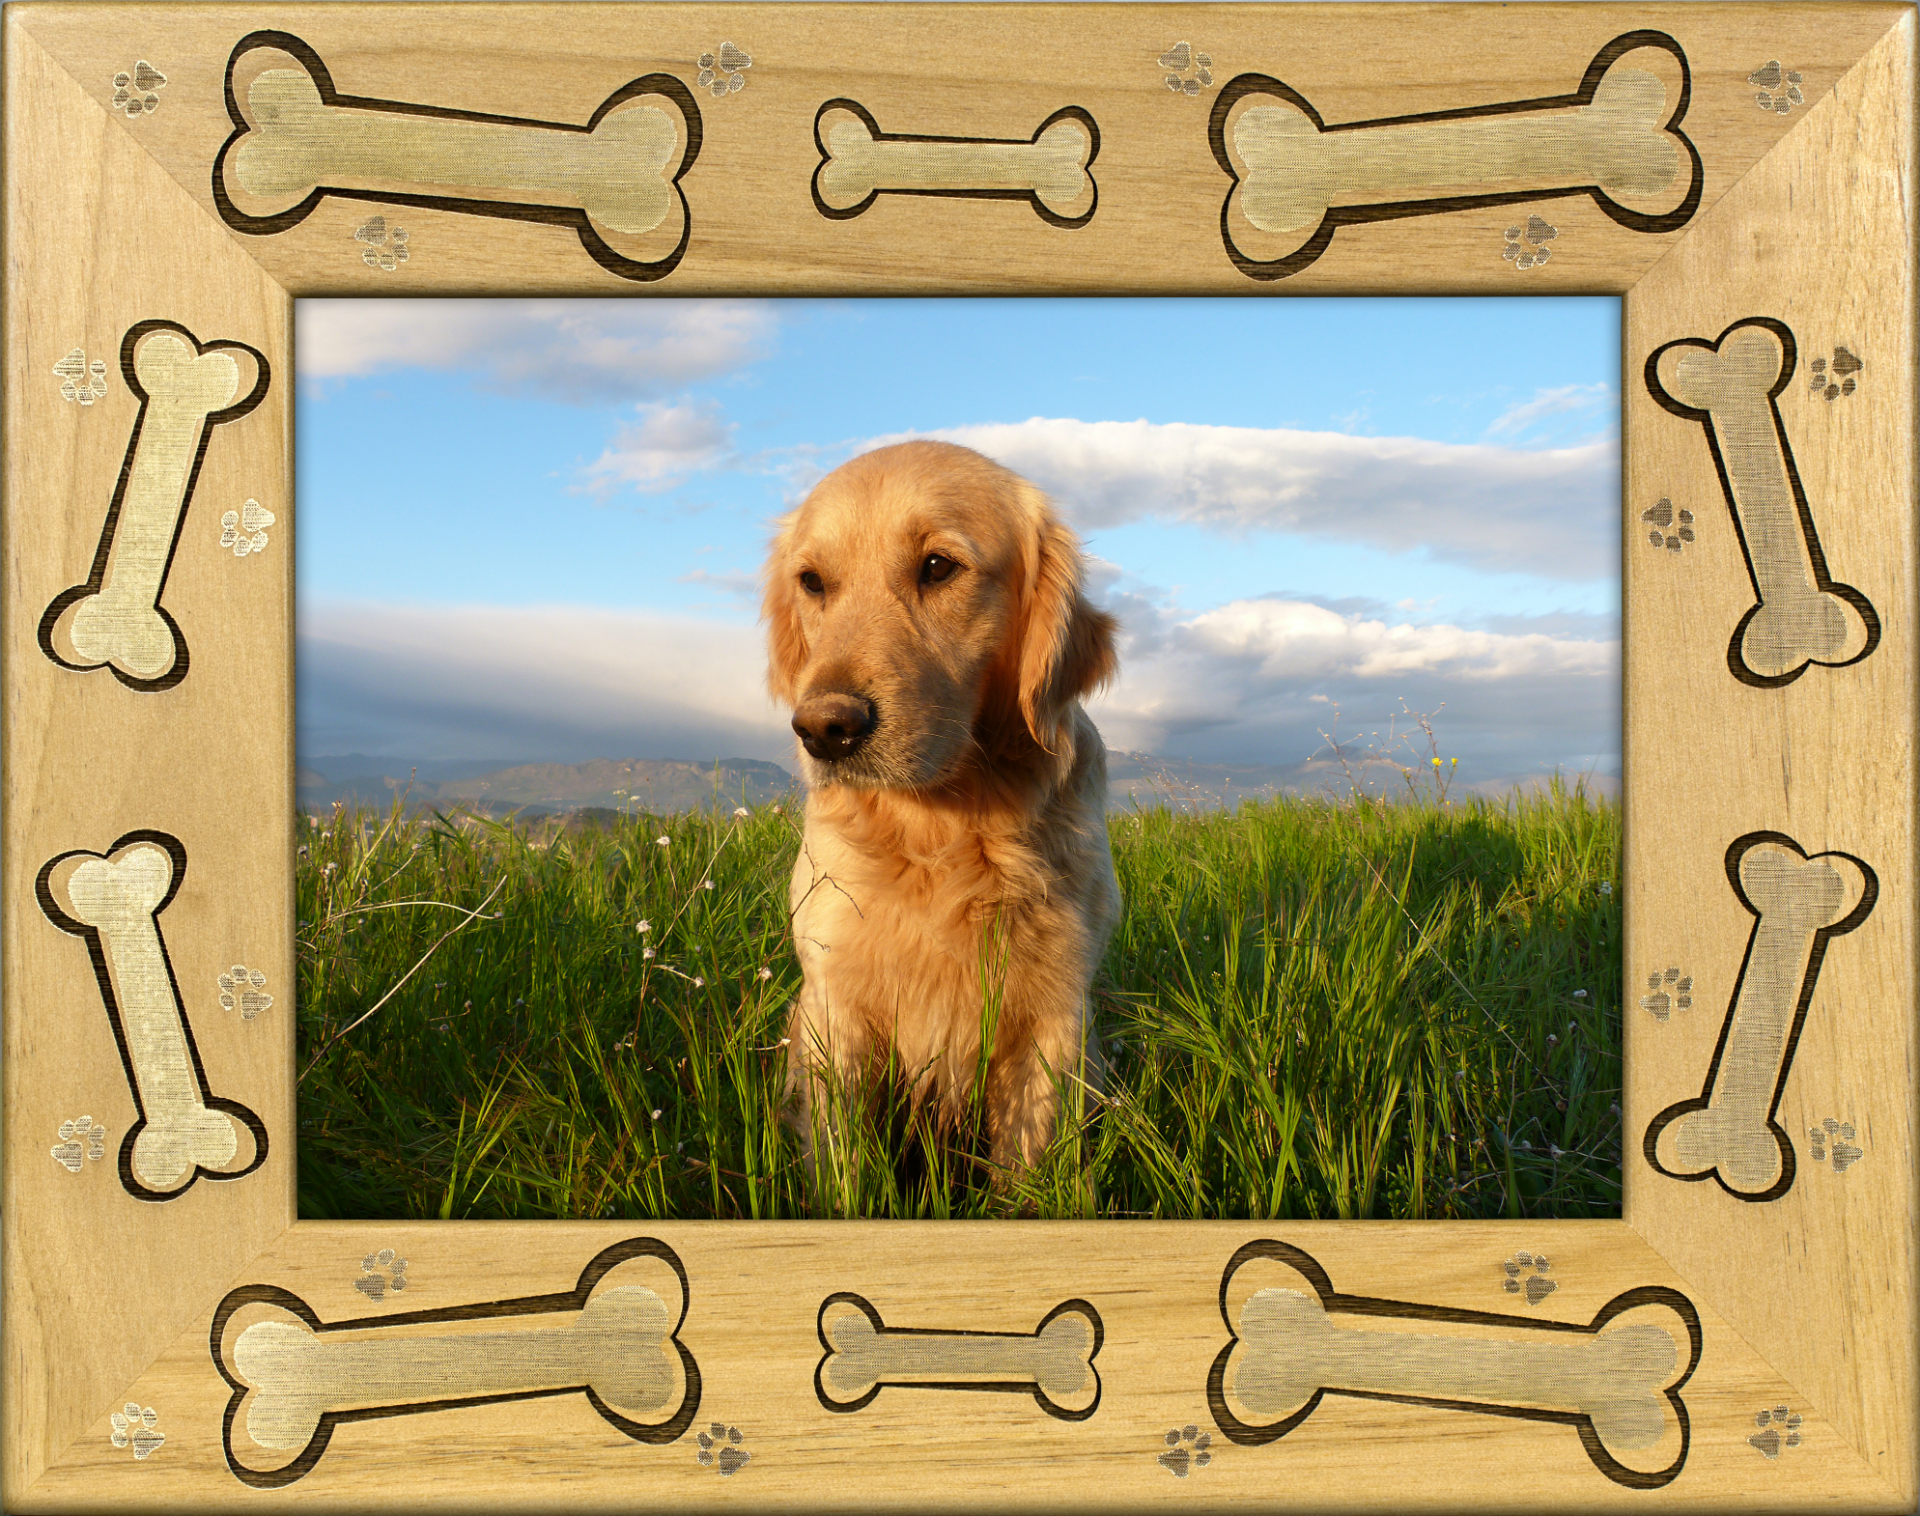 Dog Bones Alderwood Picture Frame